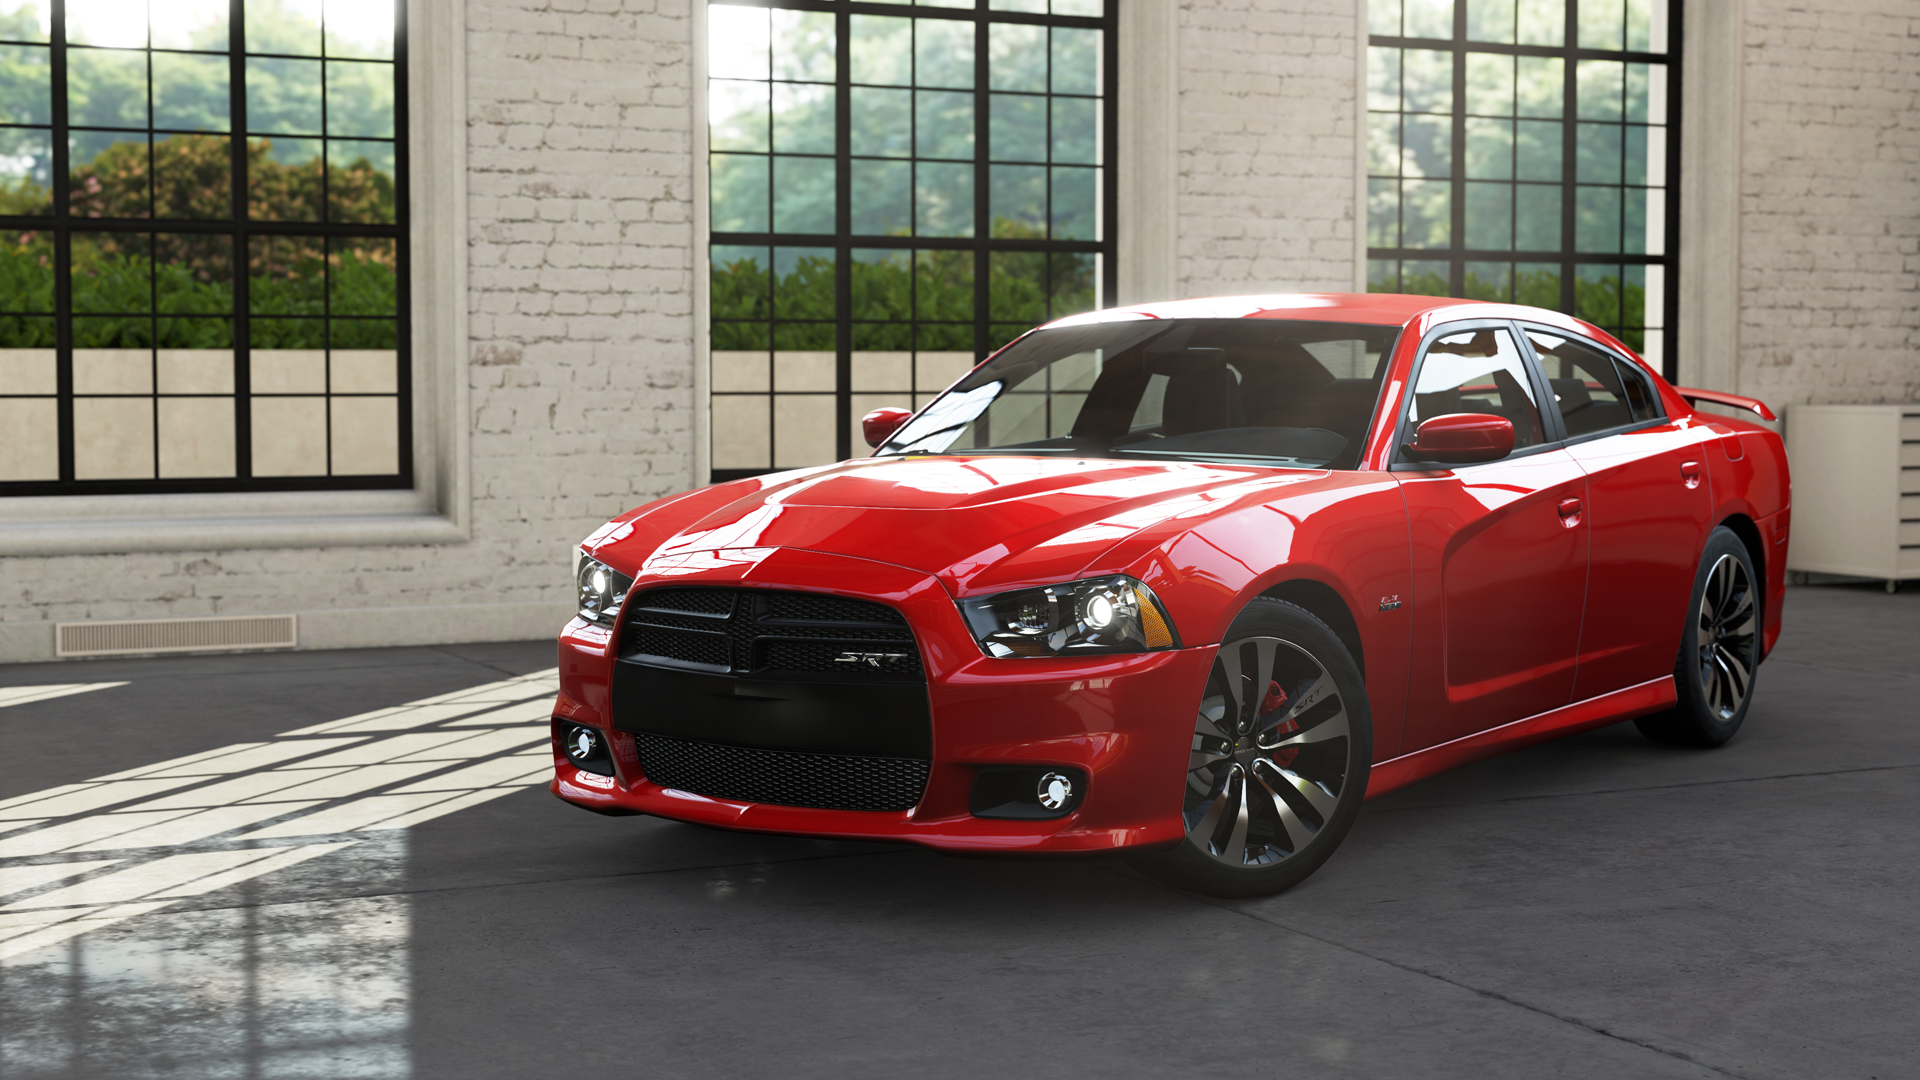 Poemas Futurismo further Tubular Transmission Cross Member Nag1 169 A 61742 additionally Driven 2016 Dodge Durango R T 112025 also El Reciclaje Beneficios Del Reciclaje in addition Dodge Charger Srt8 Orlando Fl. on 2014 challenger srt8 392